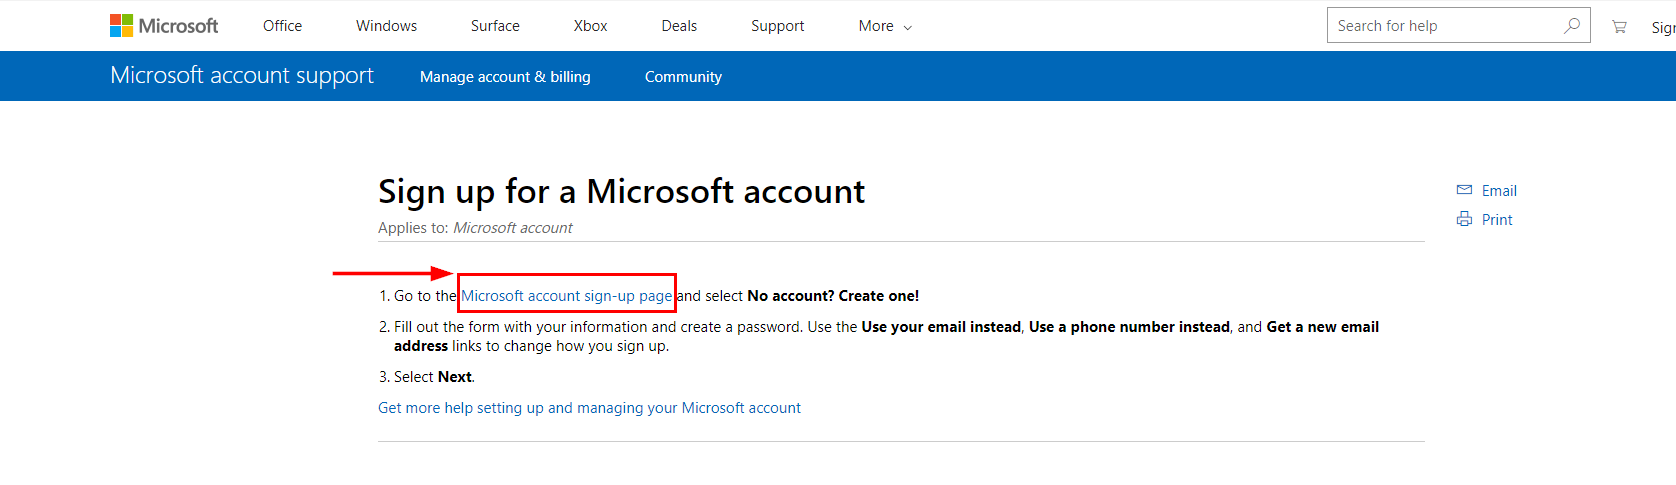 How to create a Microsoft account with a pre-existing email address